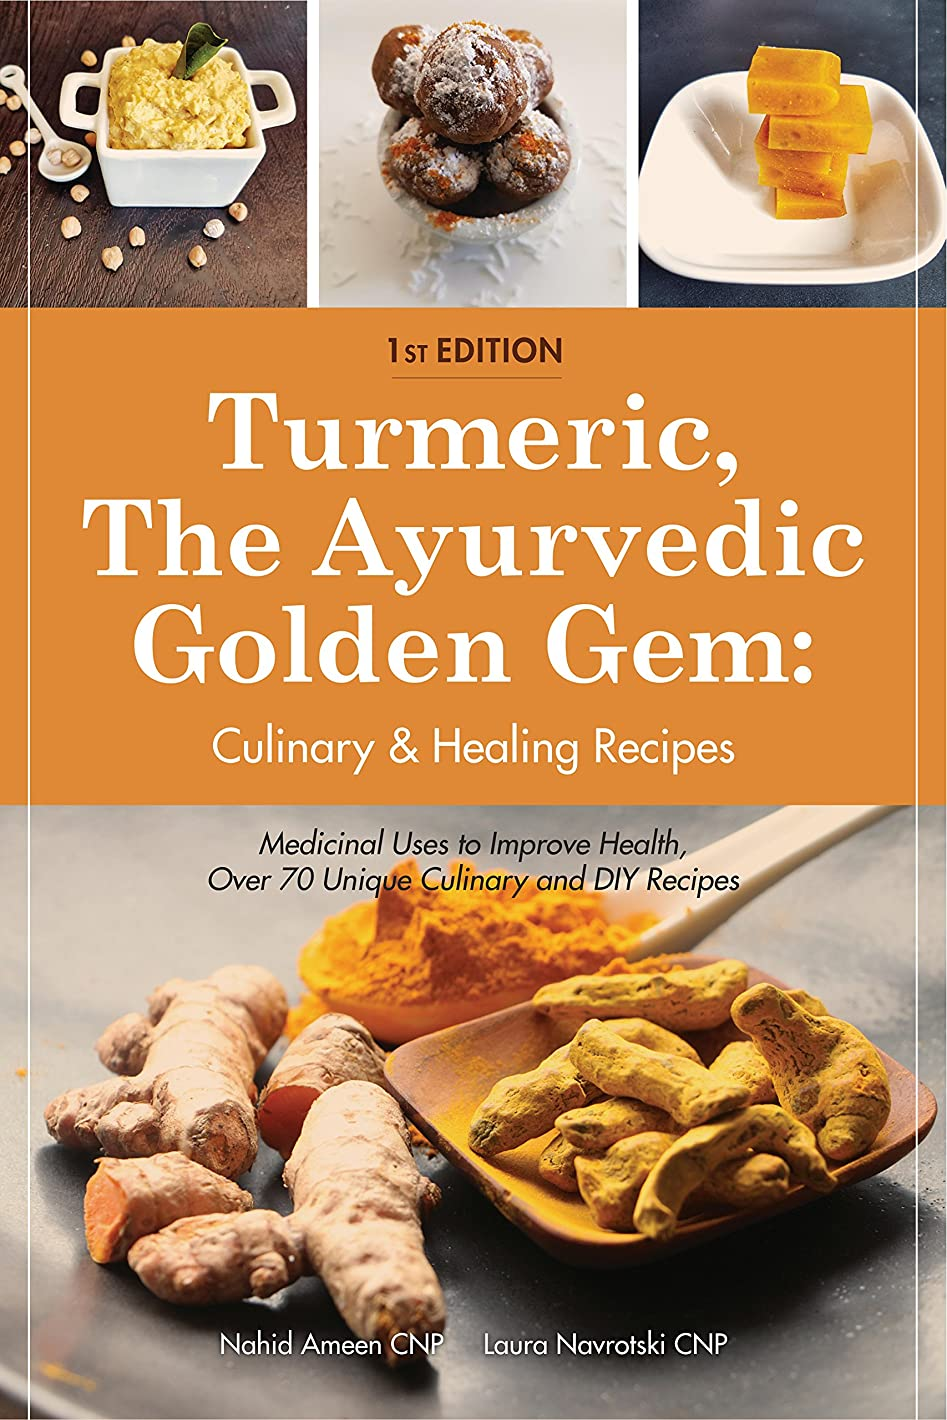 Turmeric, The Ayurvedic Golden Gem:  Culinary & Healing Recipes.: Medicinal Uses to Improve Health, Over 70 Unique Culinary and DIY Recipes (English Edition)